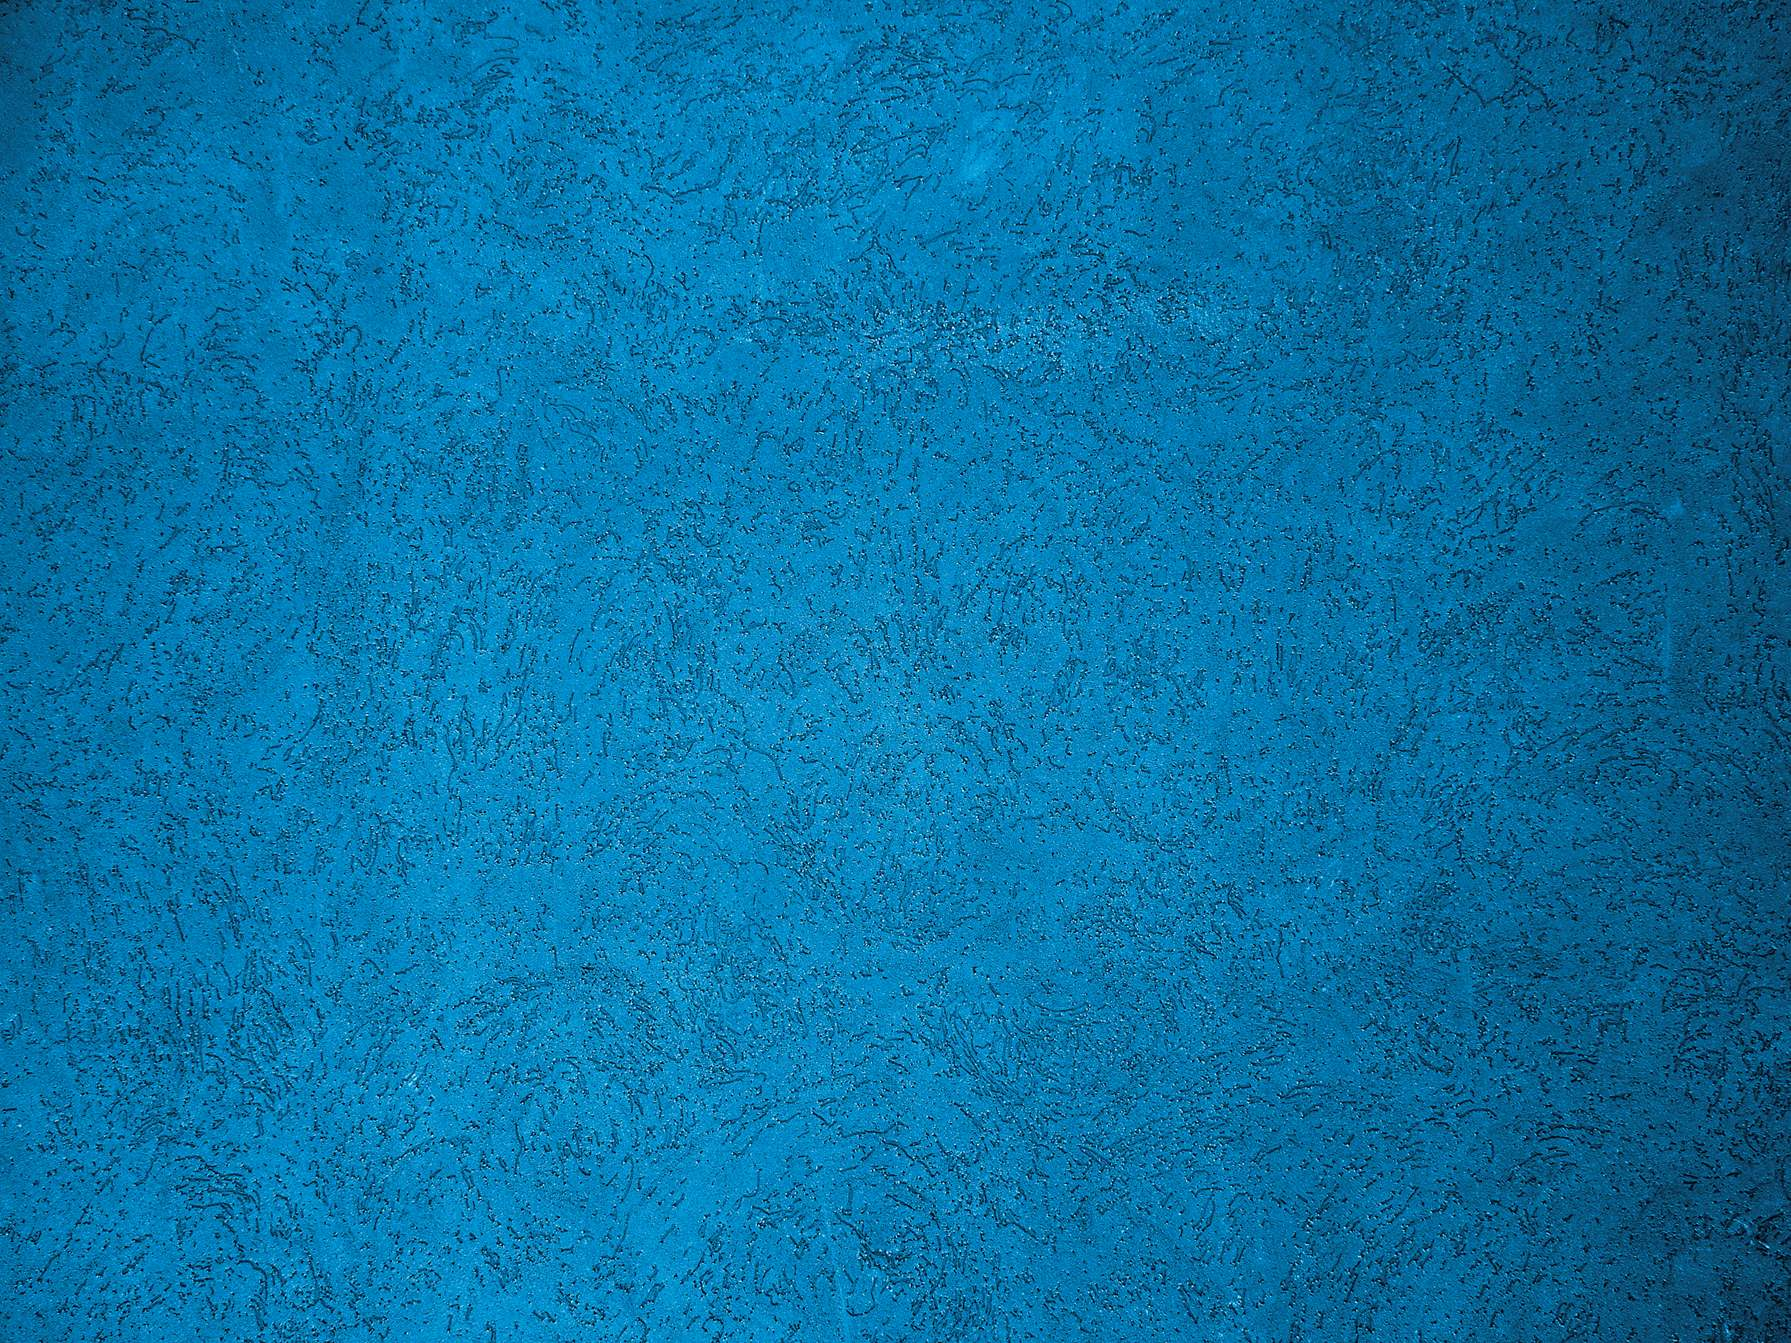 Blue Wall Texture Design : Blue wall texture background photohdx